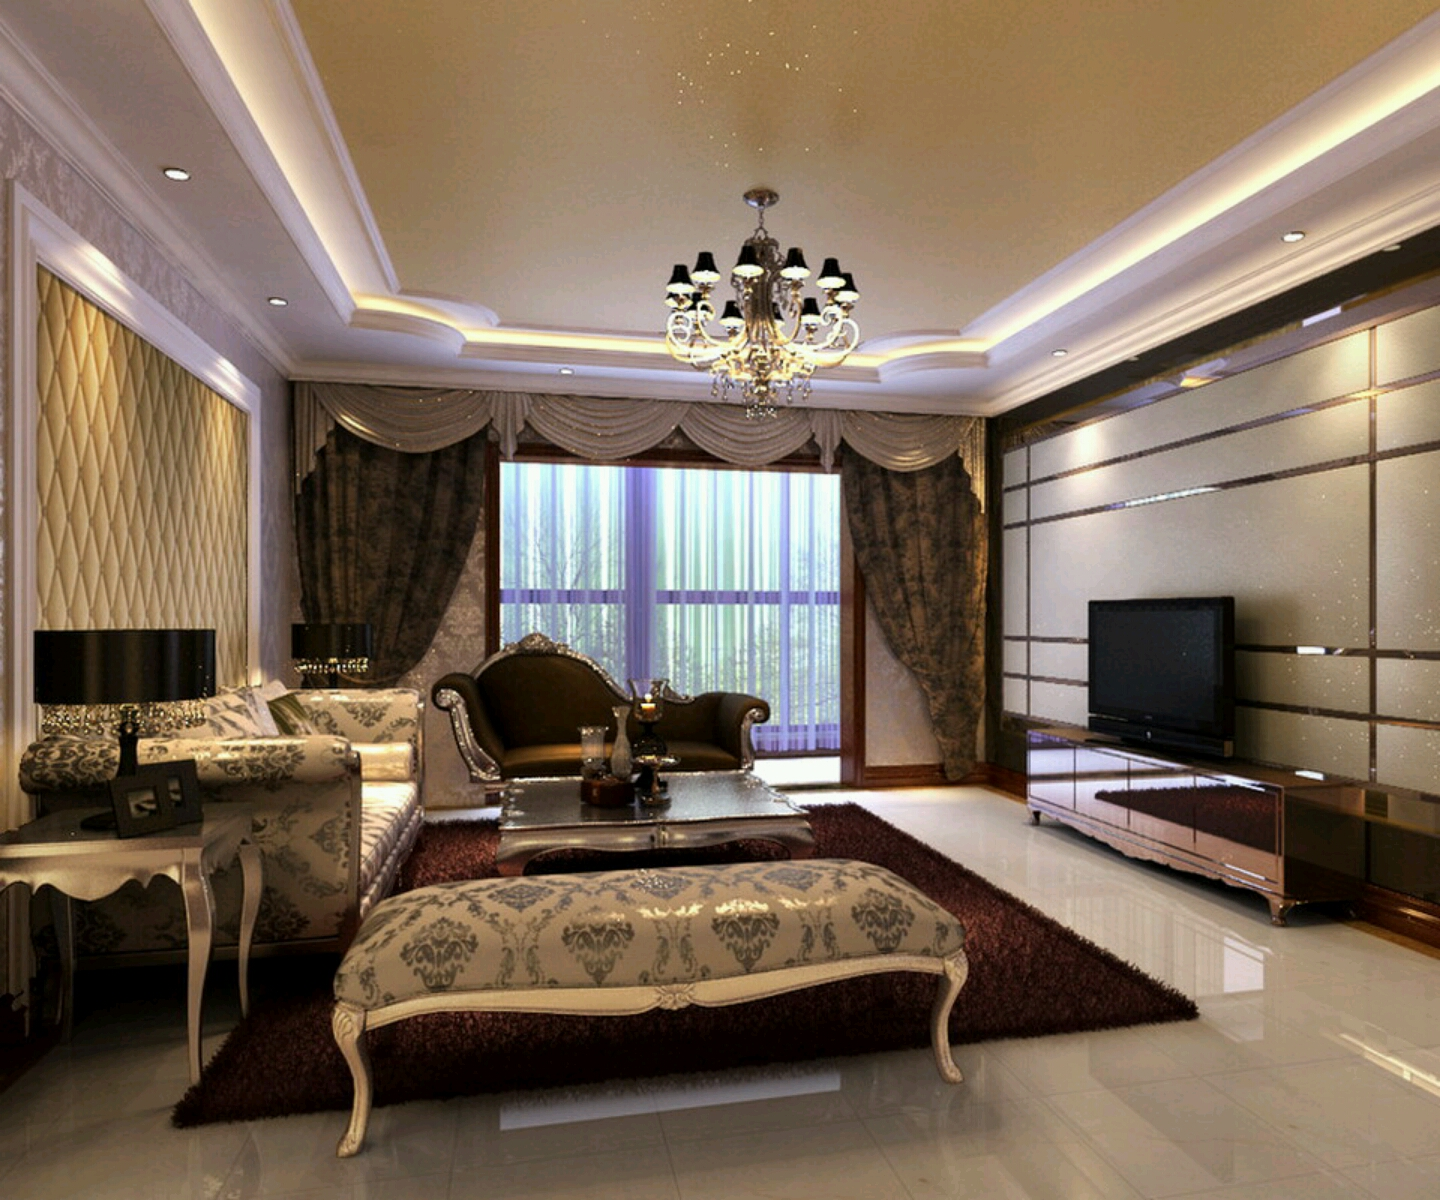 Living Room Designs Kerala Style kerala style home interior designs kerala home design and floor